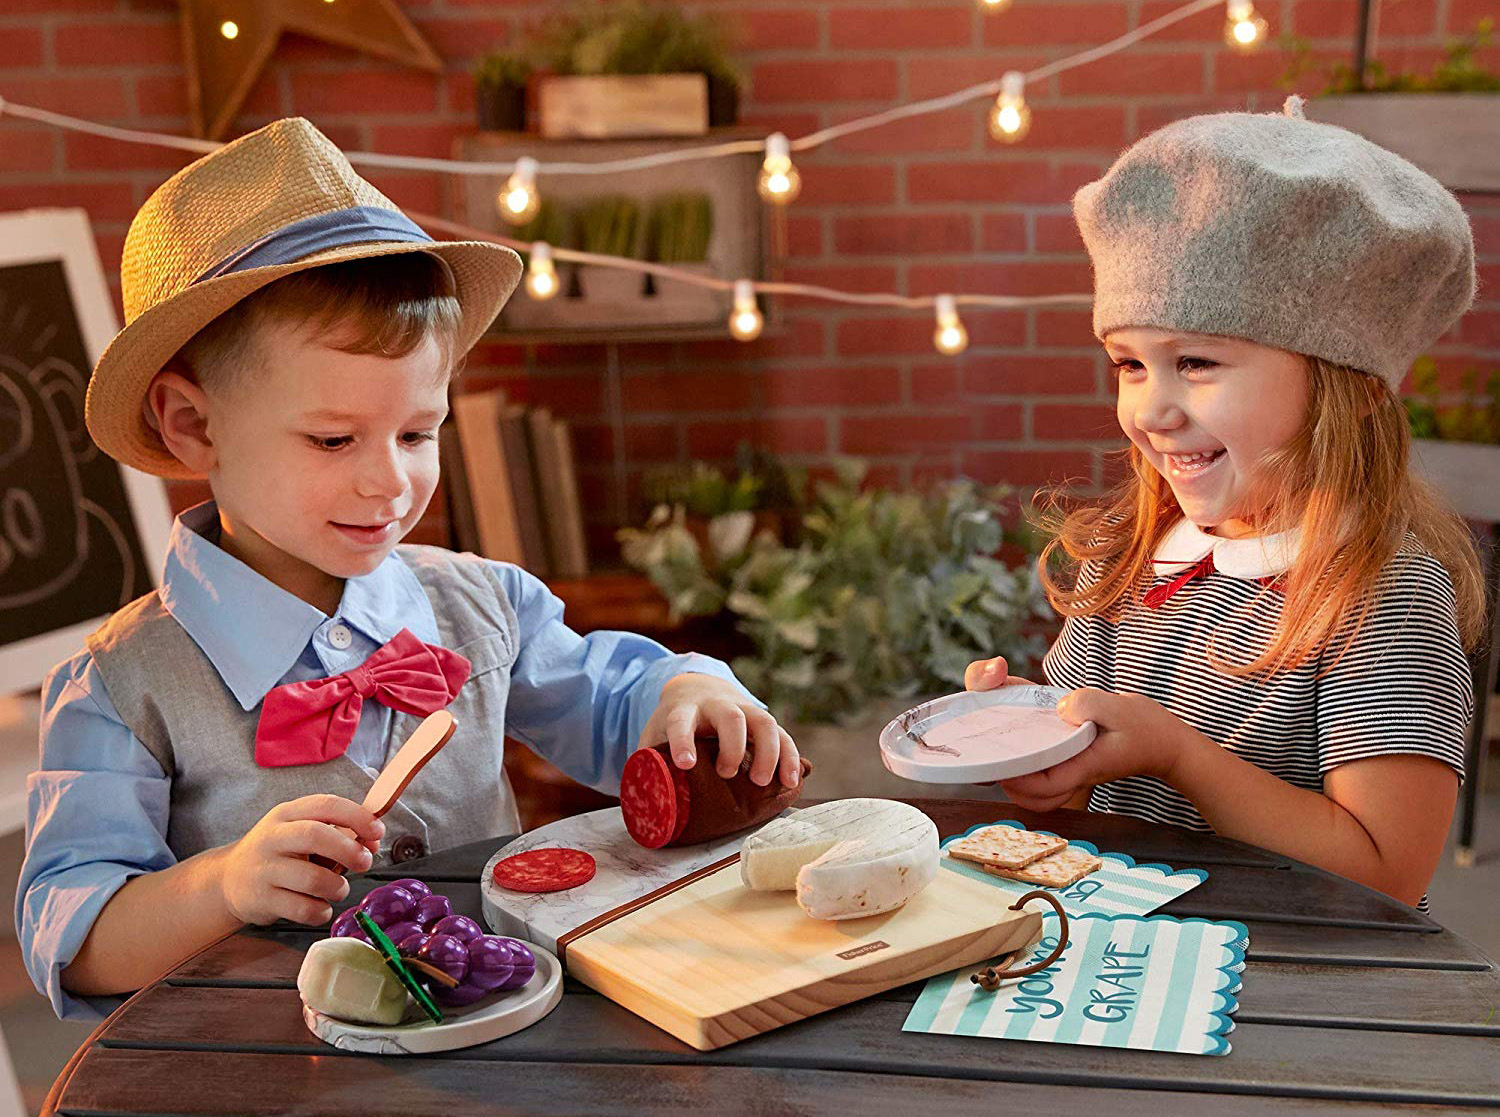 2 children dressed up and playing with a toy charcuterie set